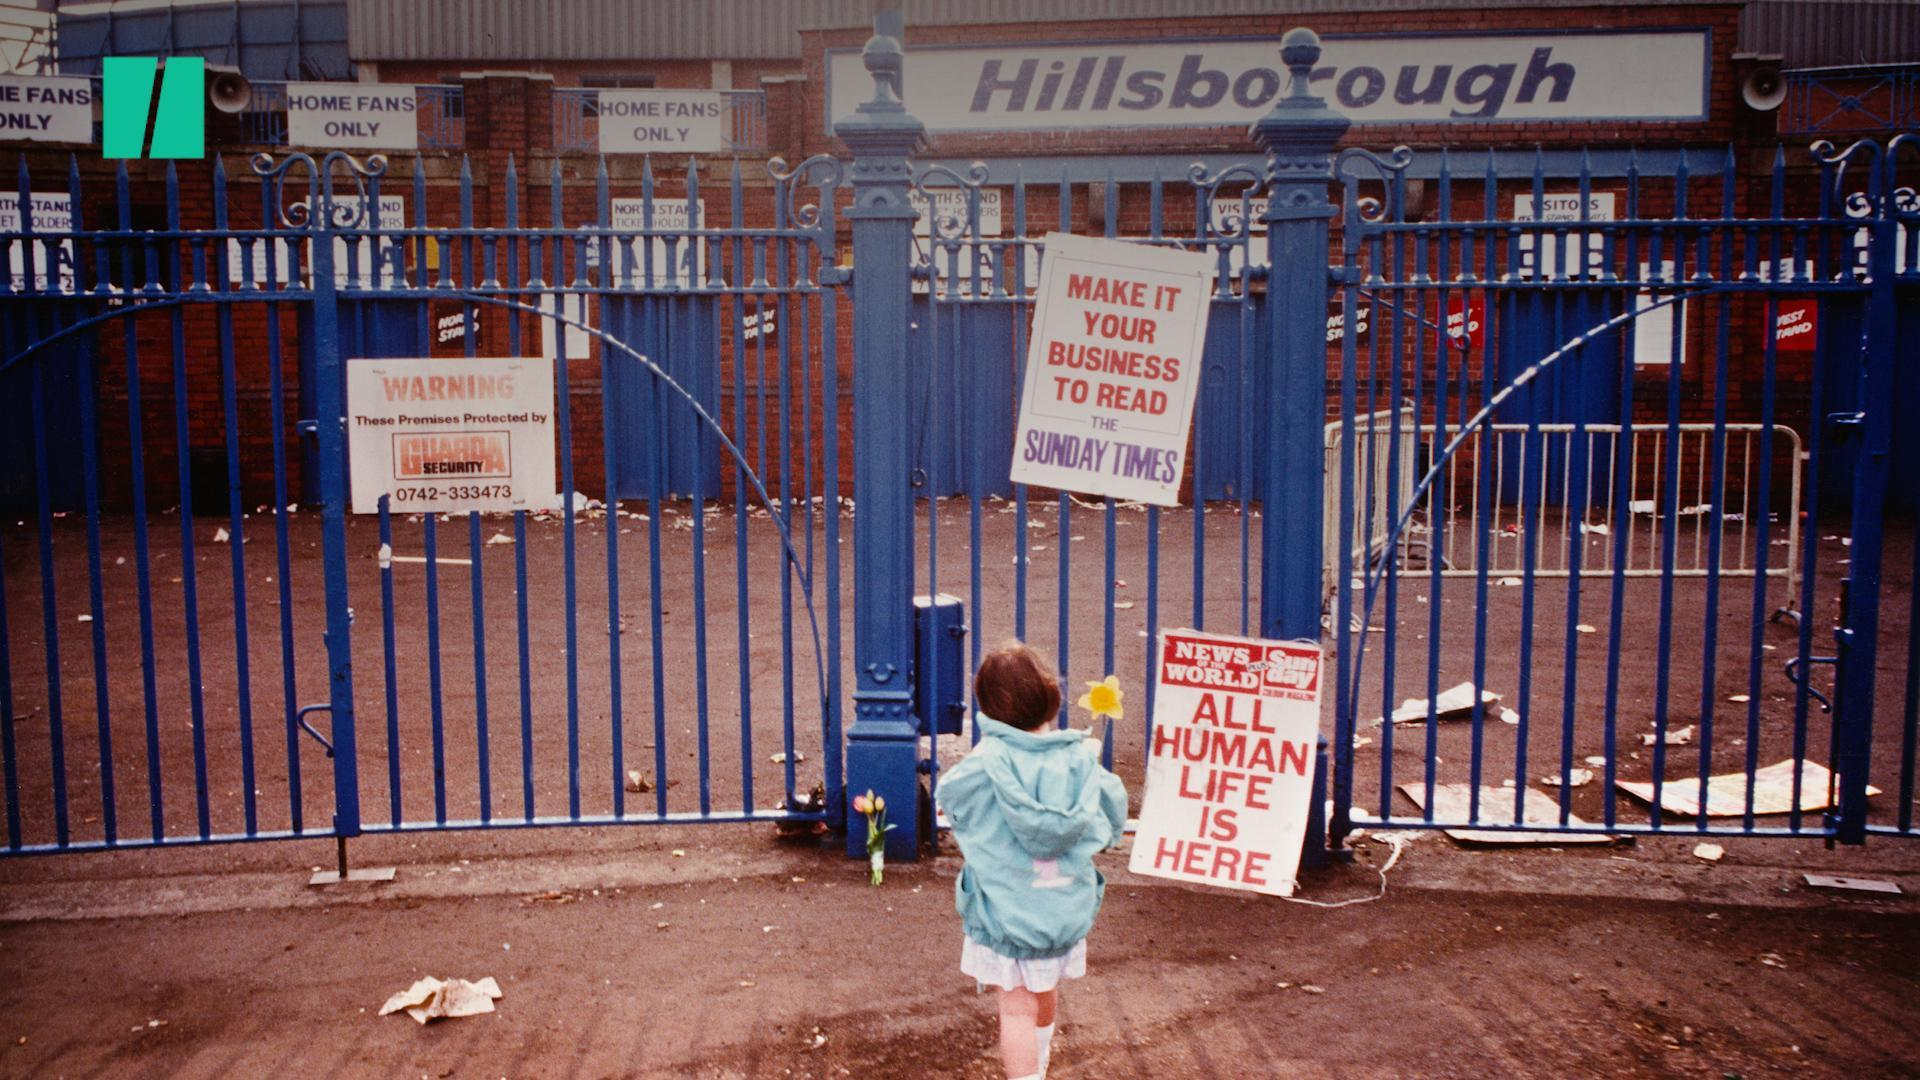 Hillsborough Match Commander David Duckenfield Pleads Not Guilty To Manslaughter By Gross Negligence